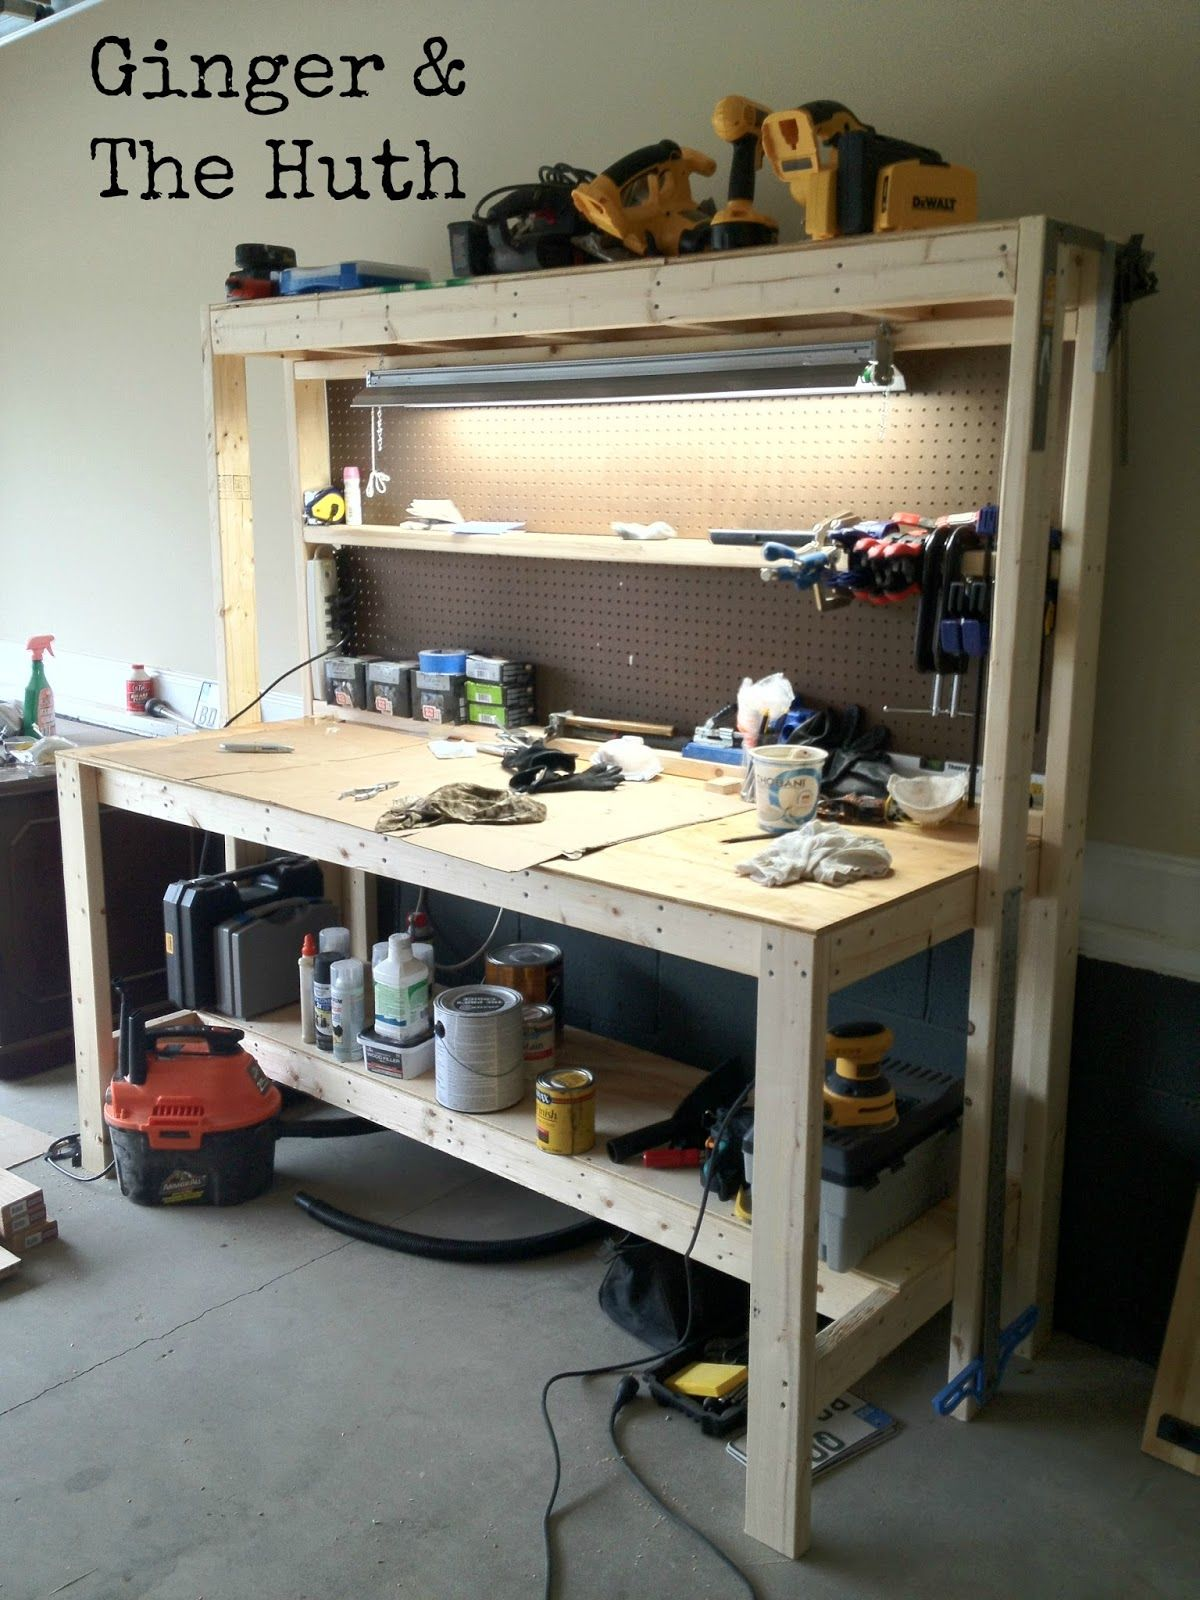 Ginger & The Huth DIY Work Bench complete instructions